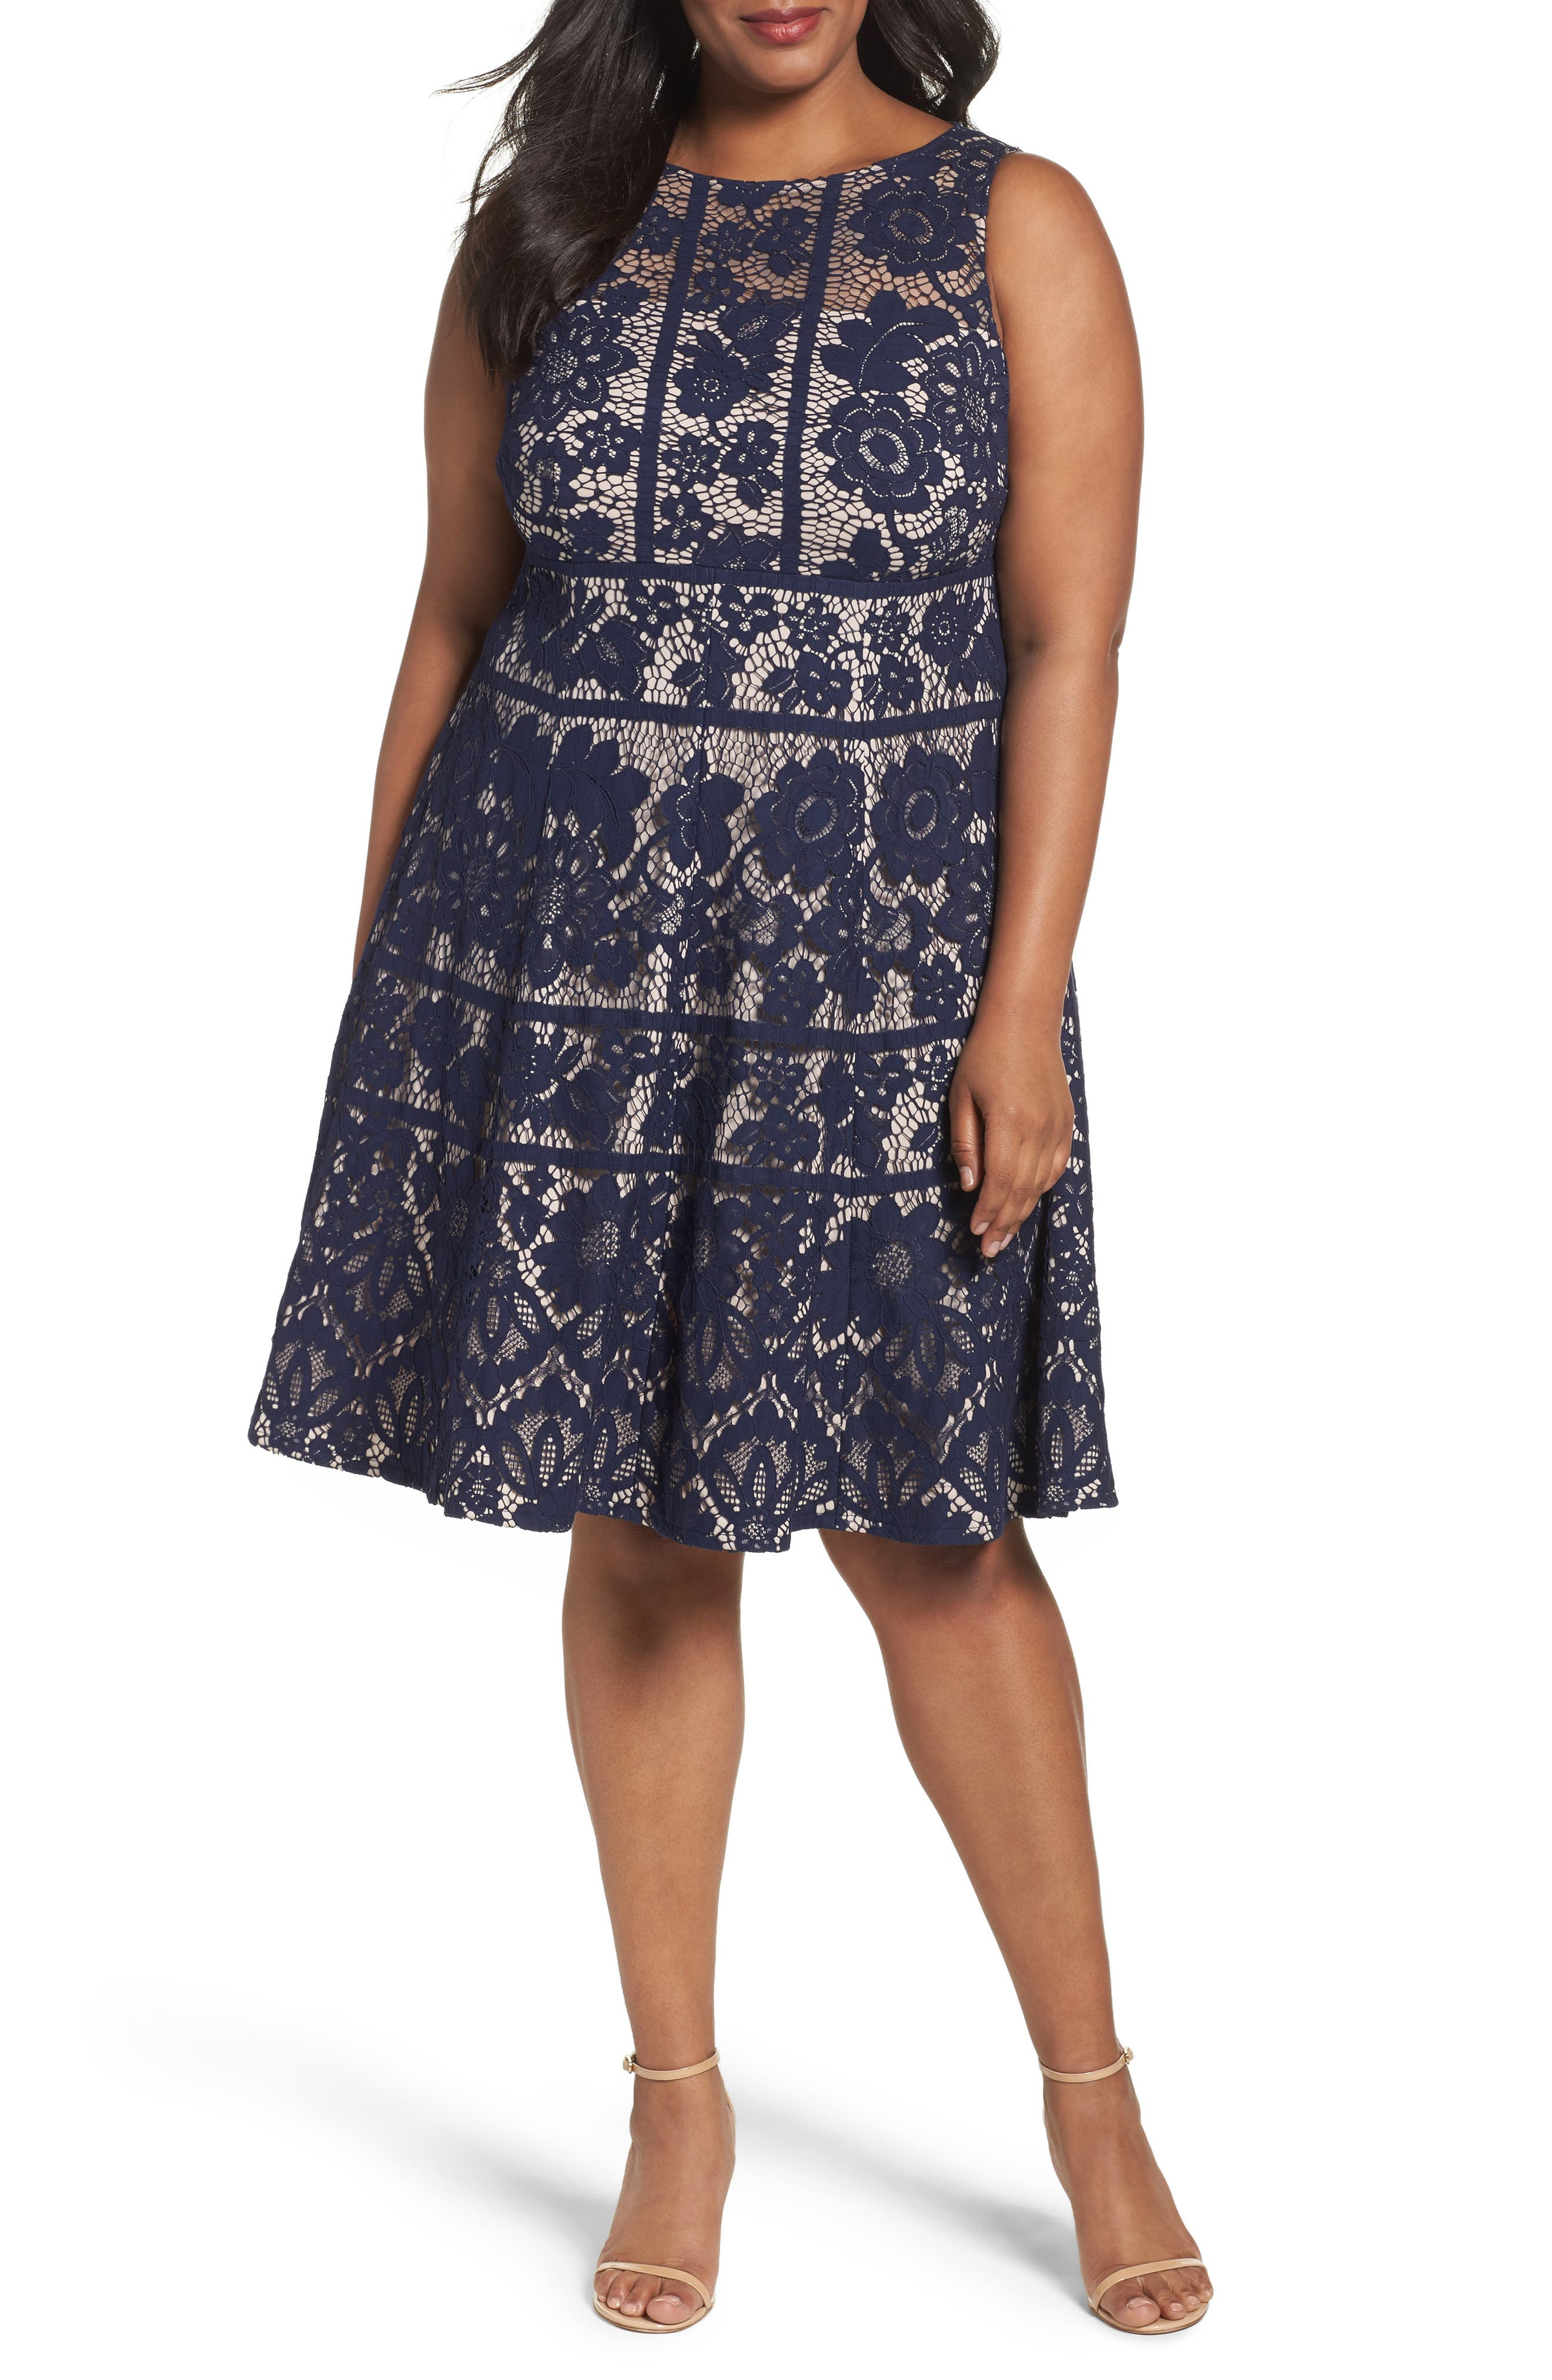 Alternate Image 1 Selected - London Times Flower Bloom Lace A-Line Dress (Plus Size)